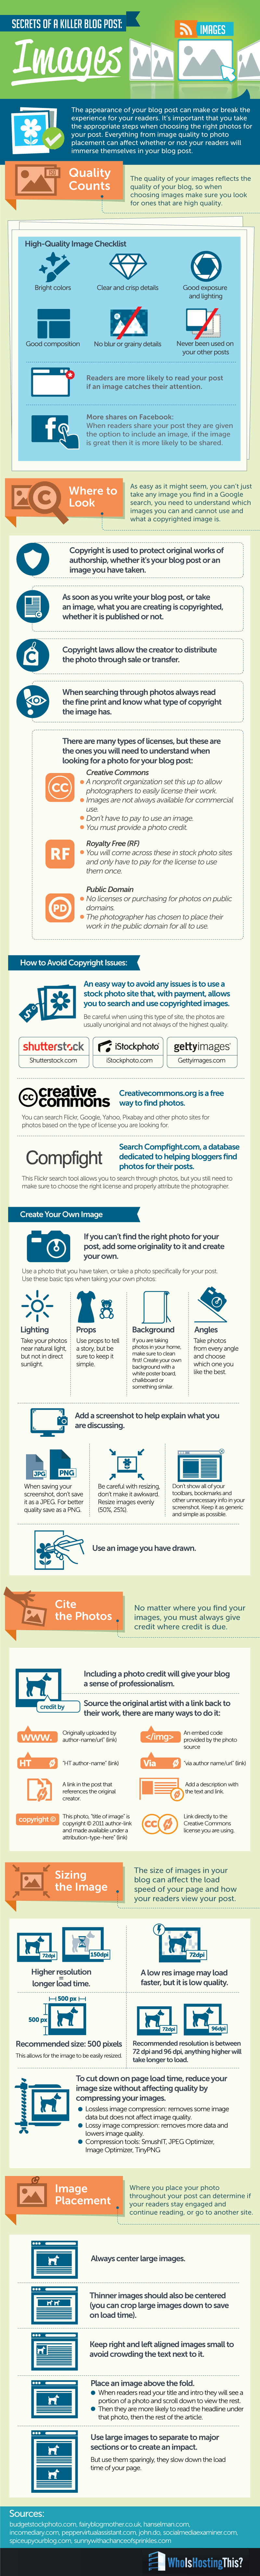 infographie-image-tips-seo